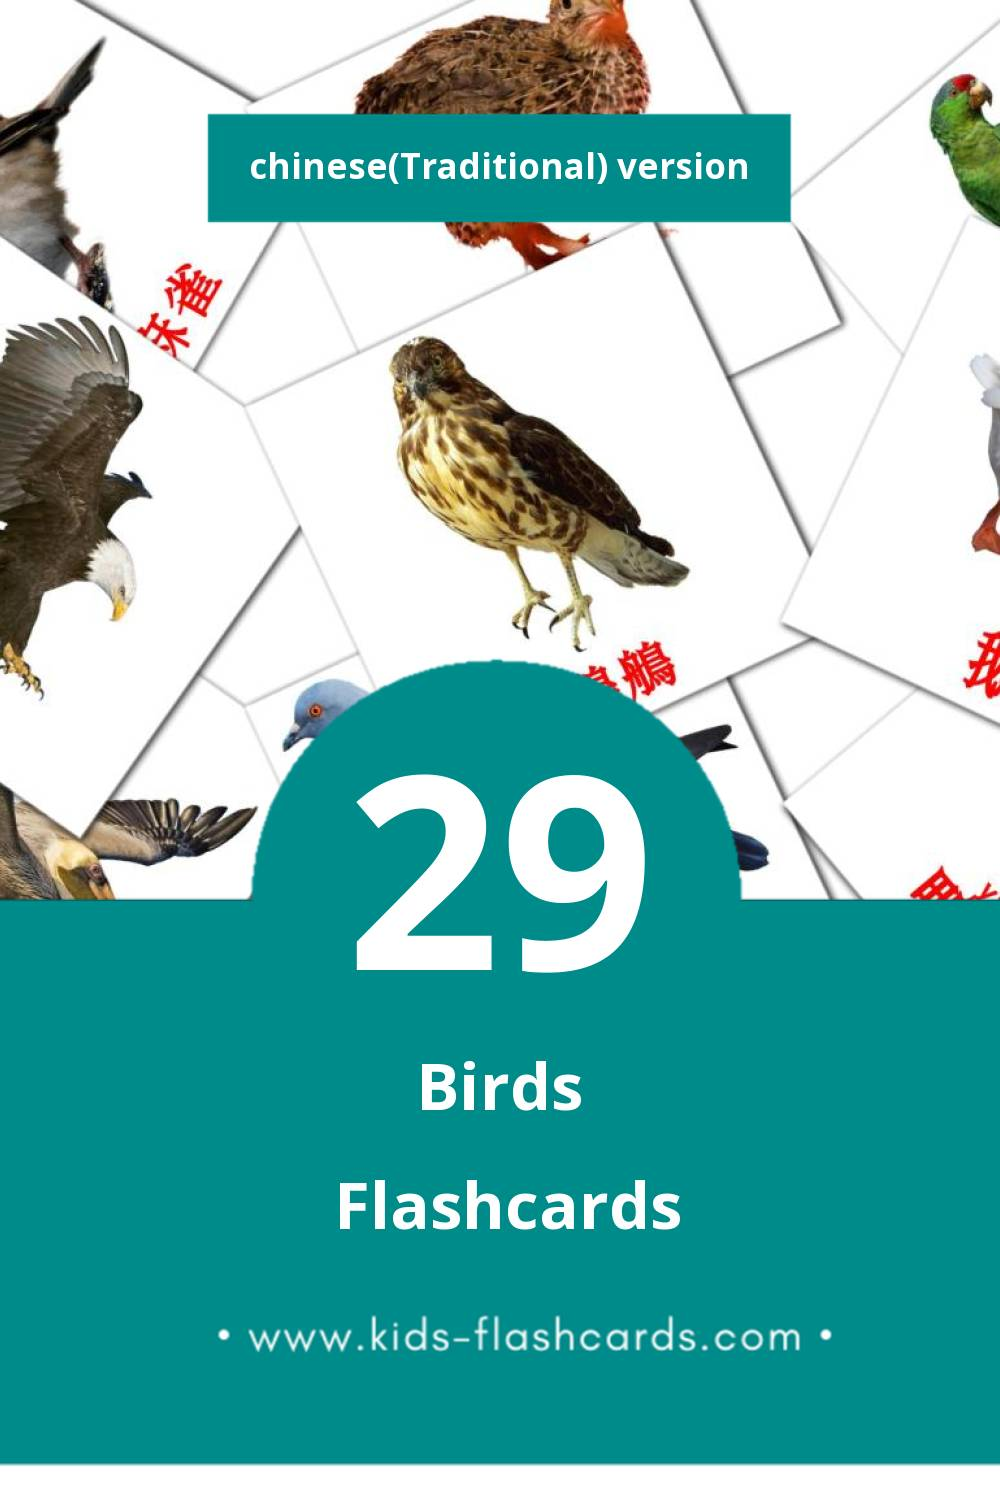 Visual 鳥兒 Flashcards for Toddlers (16 cards in Chinese(Traditional))